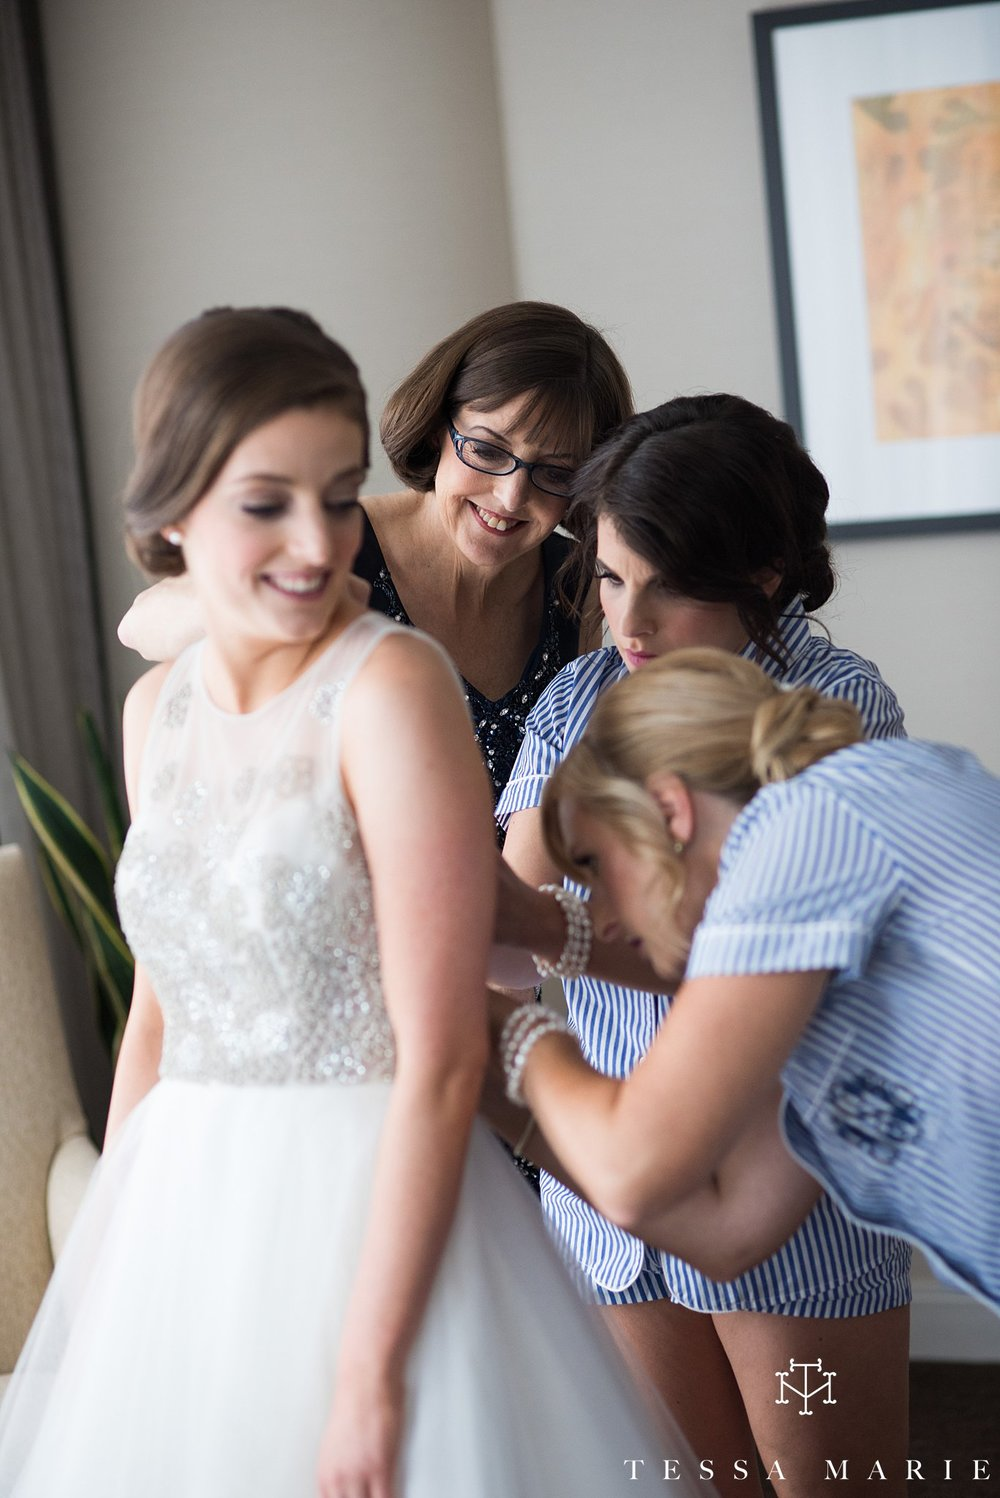 atlanta_wedding_photographer_tessa_marie_weddings_lowes_hotel_peachtree_midtown_fall_wedding_0084.jpg